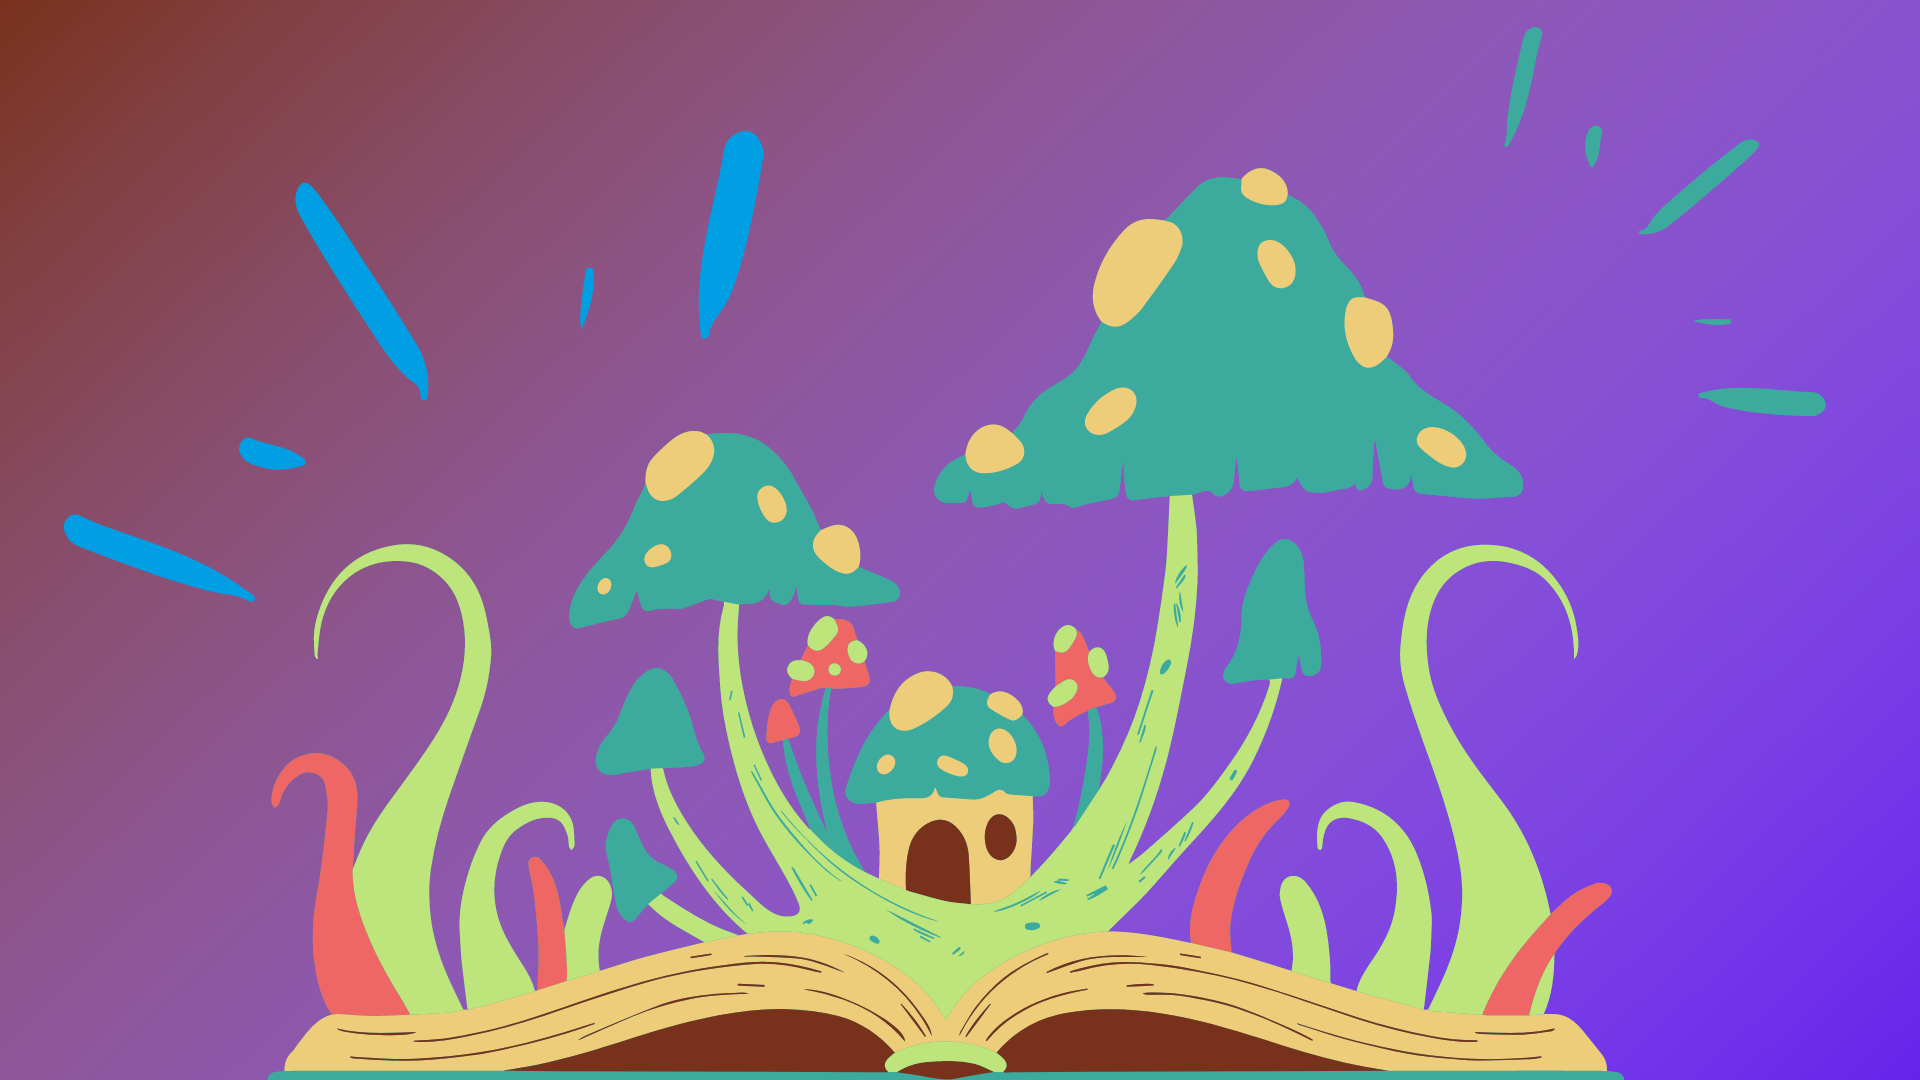 A psychedelic blue & yellow house surrounded by psychedelic mushrooms on a purple background.